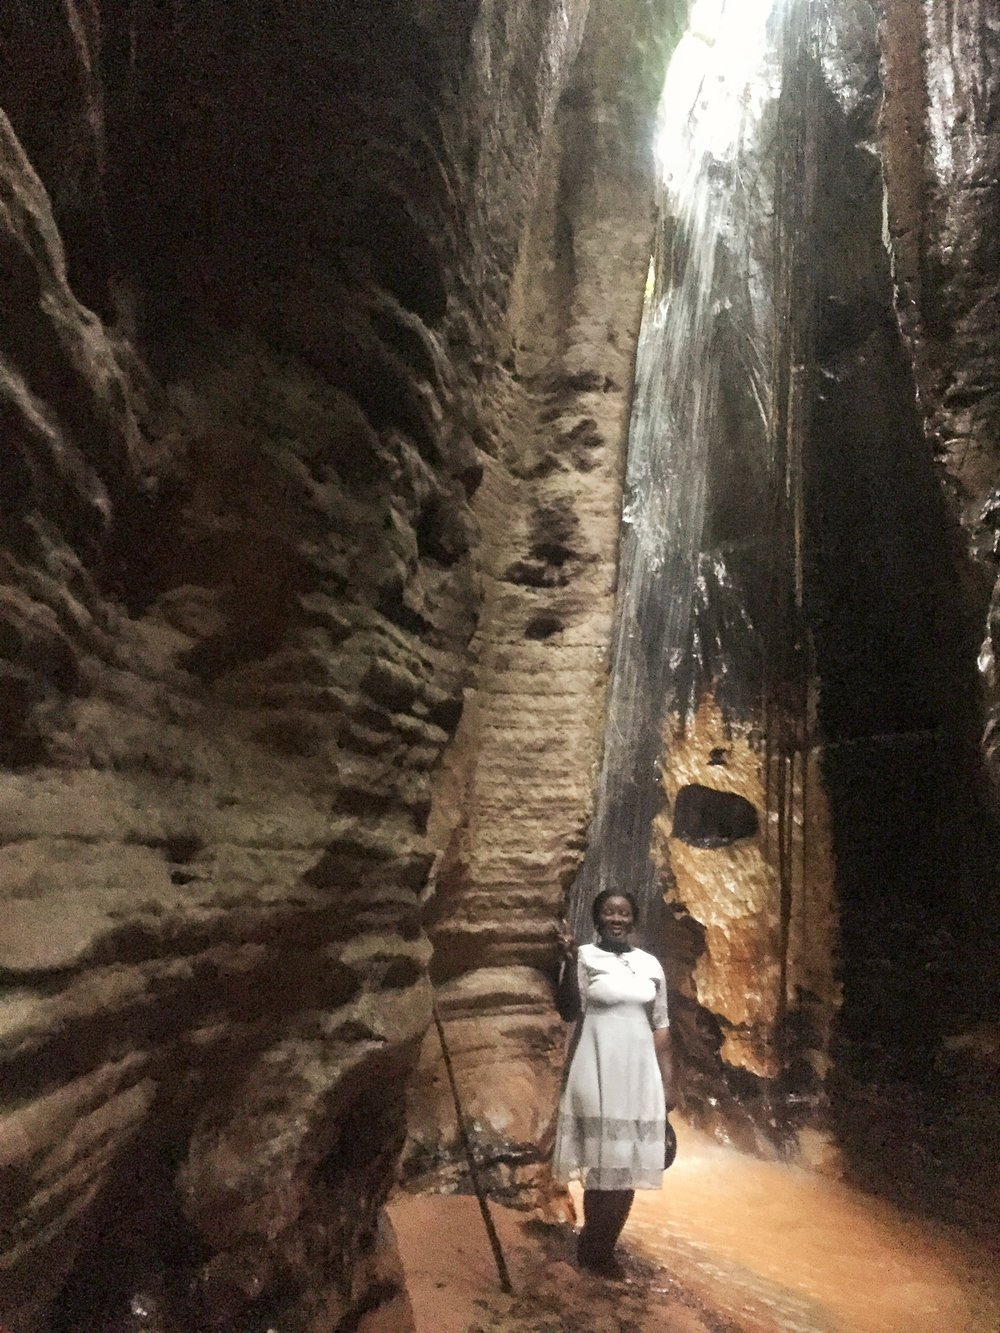 Awhum waterfalls and caves review | The Ajala Bug